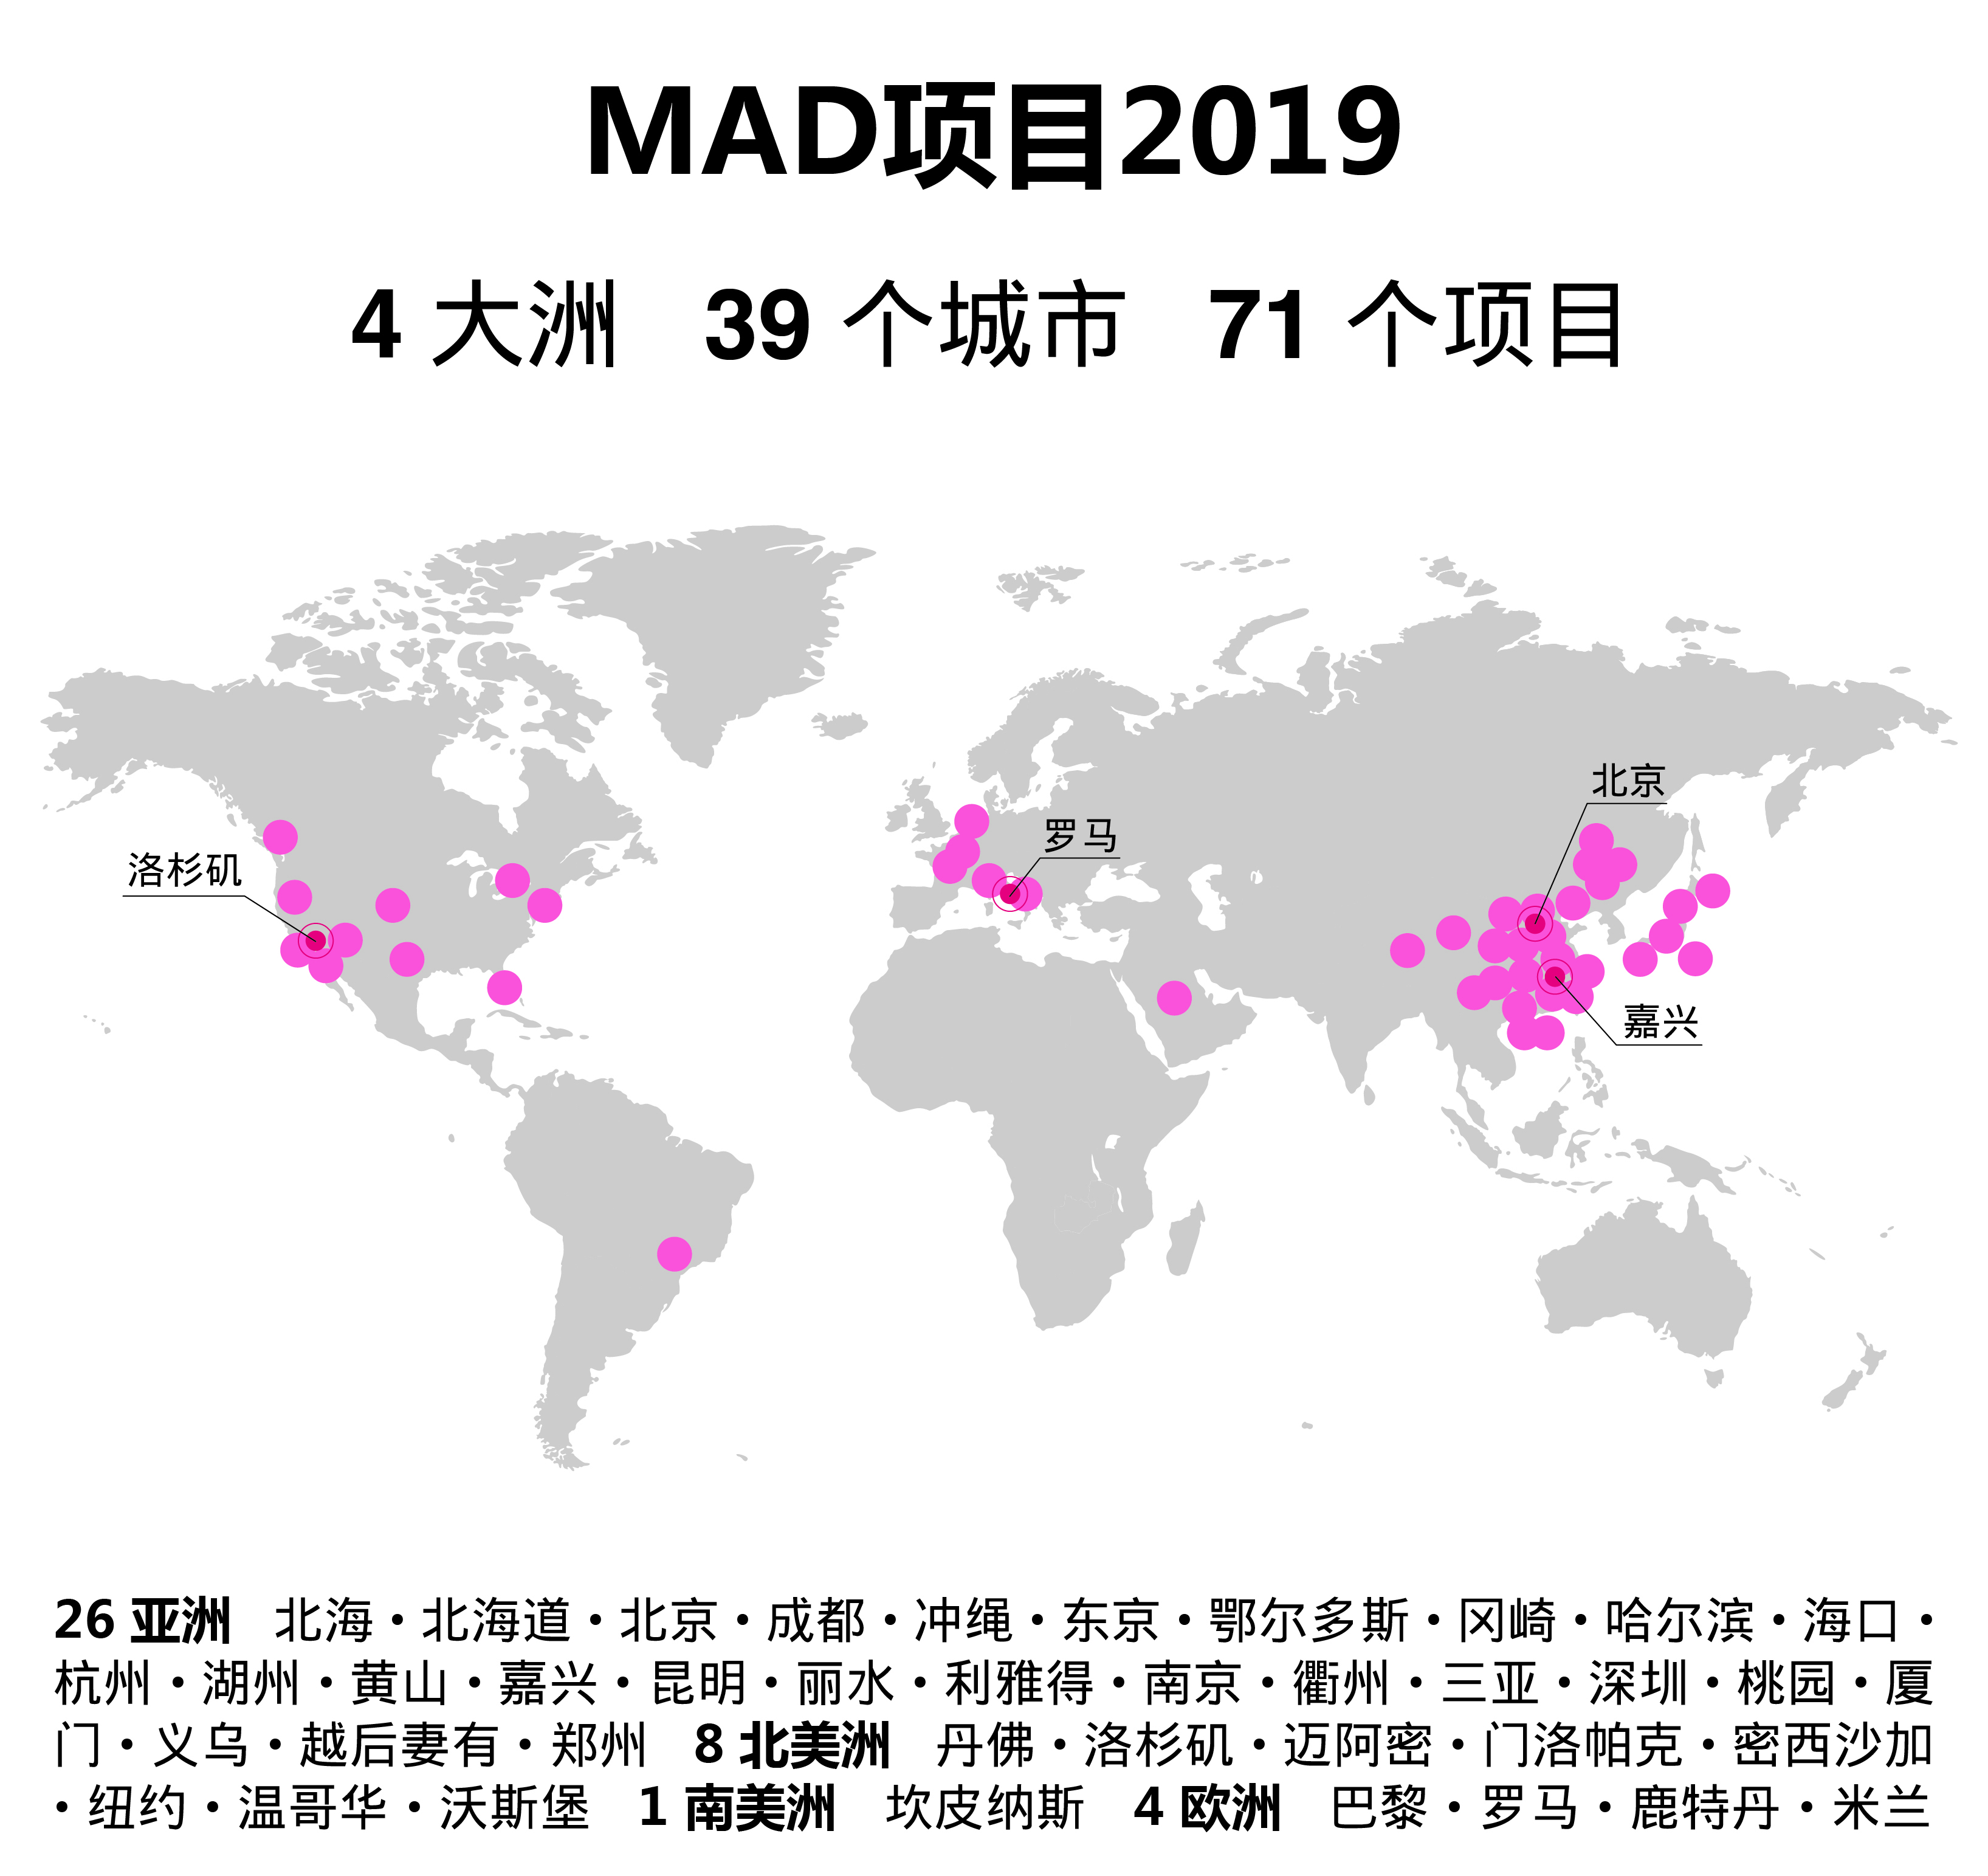 190927_MAD_Infographic_Location